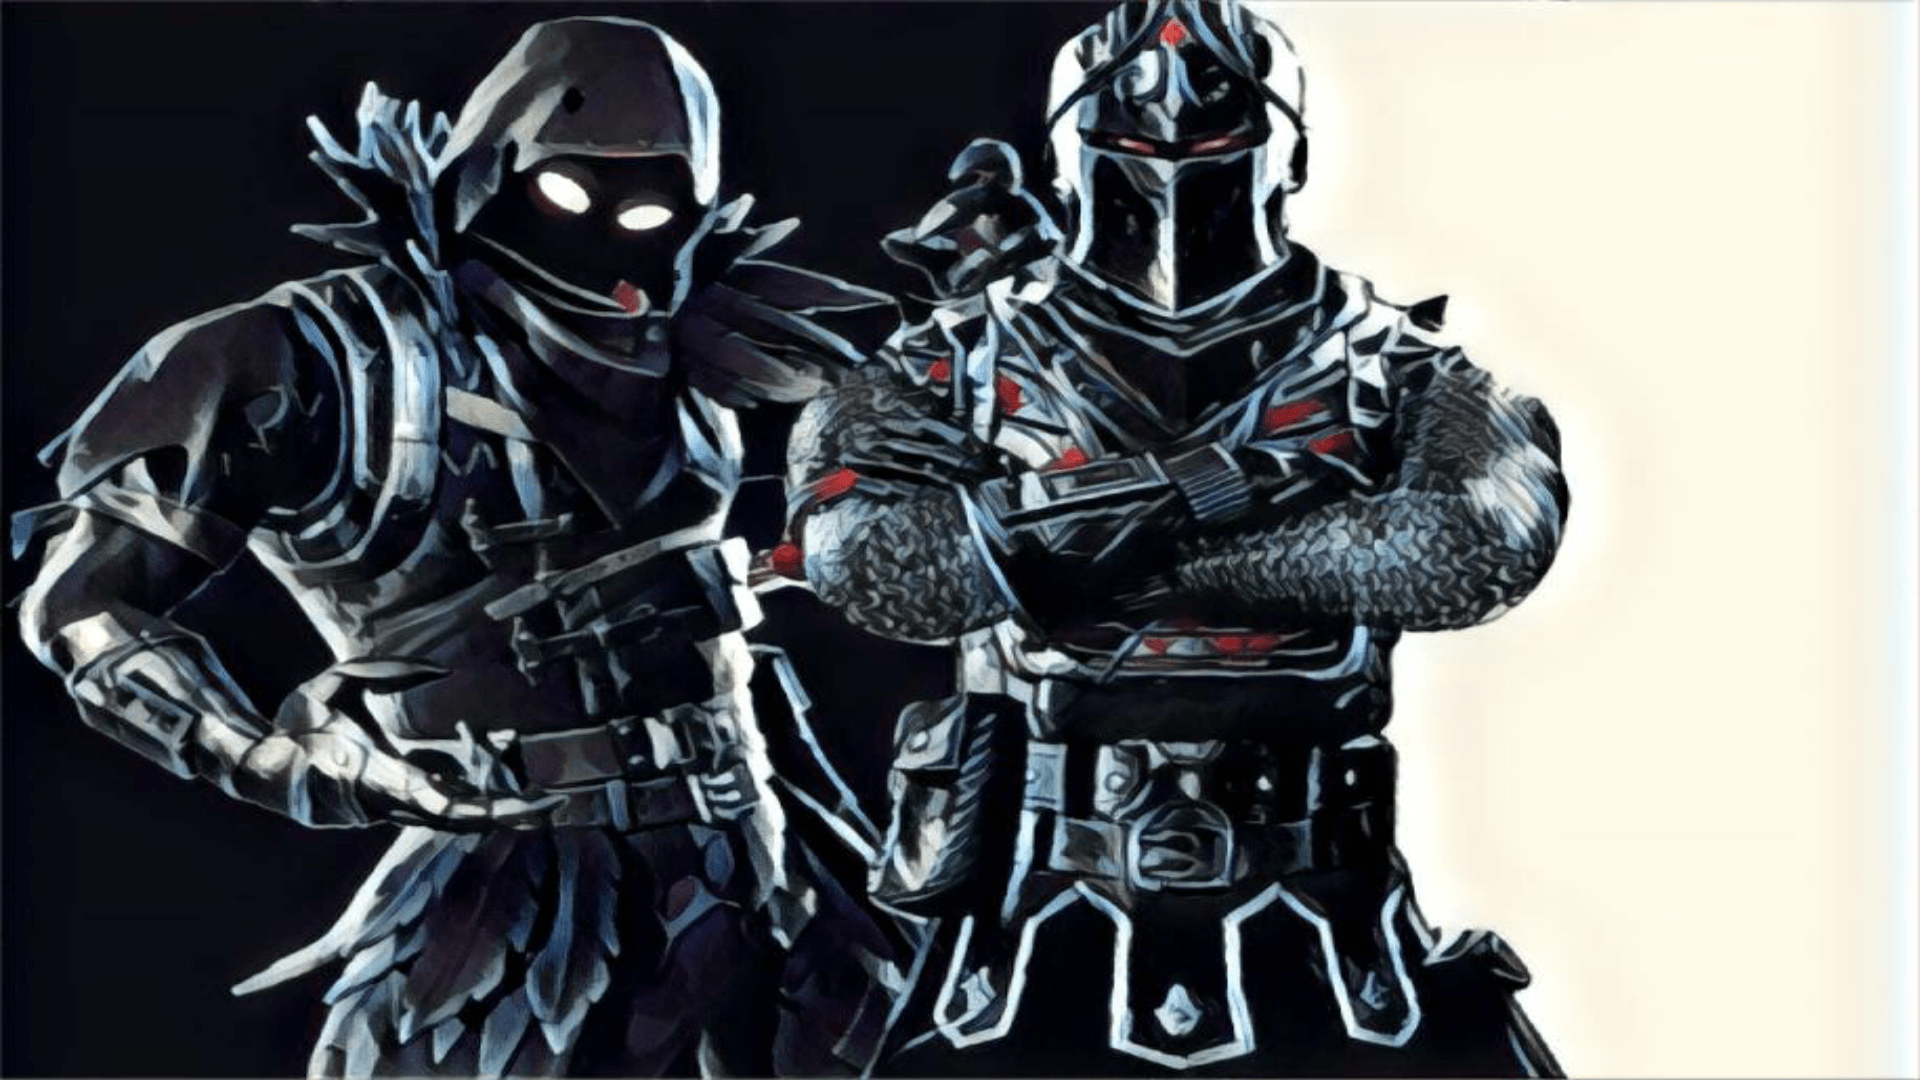 1920x1080 Raven and Black Knight Wallpaper : FortNiteBR